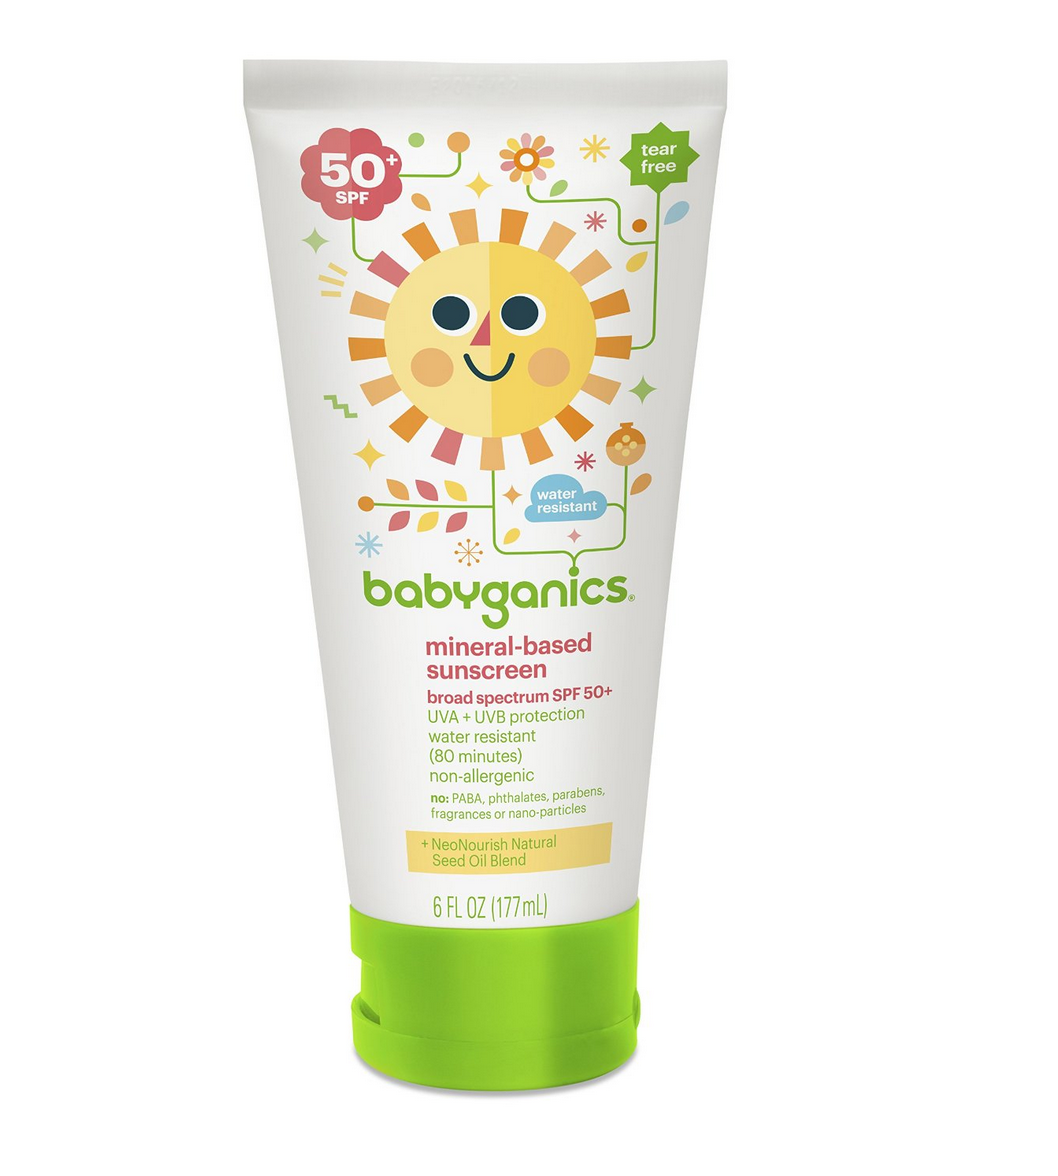 Pack of 2 Babyganics Mineral-Based Baby Sunscreen Lotion, SPF 50 Only $11.98 (Reg. $22.98!)